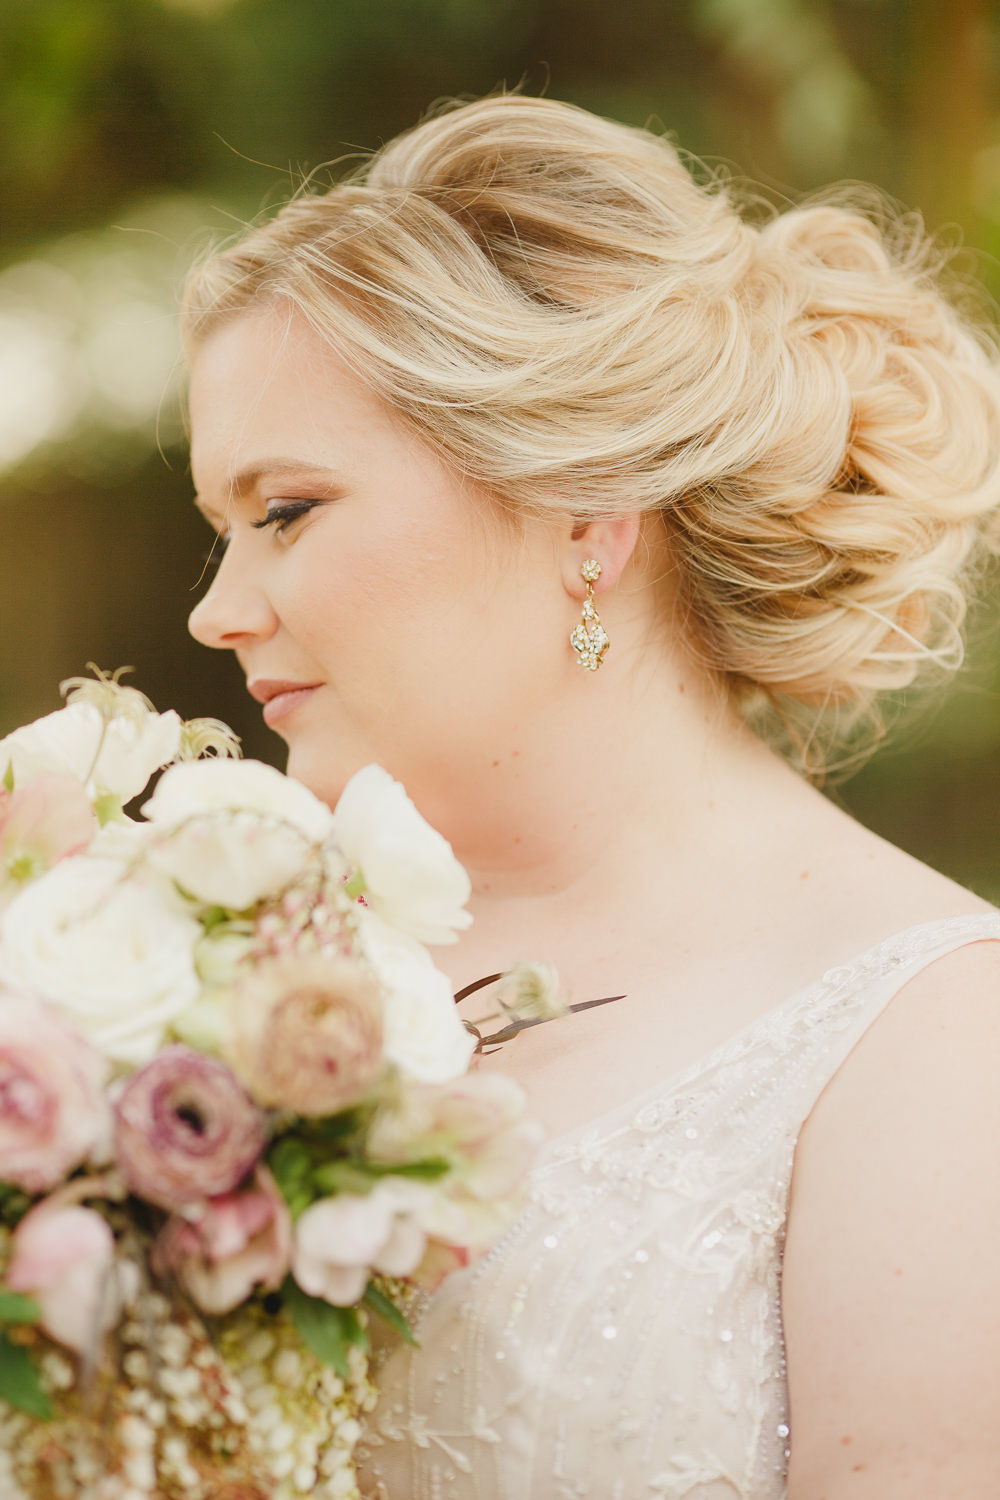 Bride Bridal Make Up Earrings Enchanted Forest Wedding Kristen Booth Photography